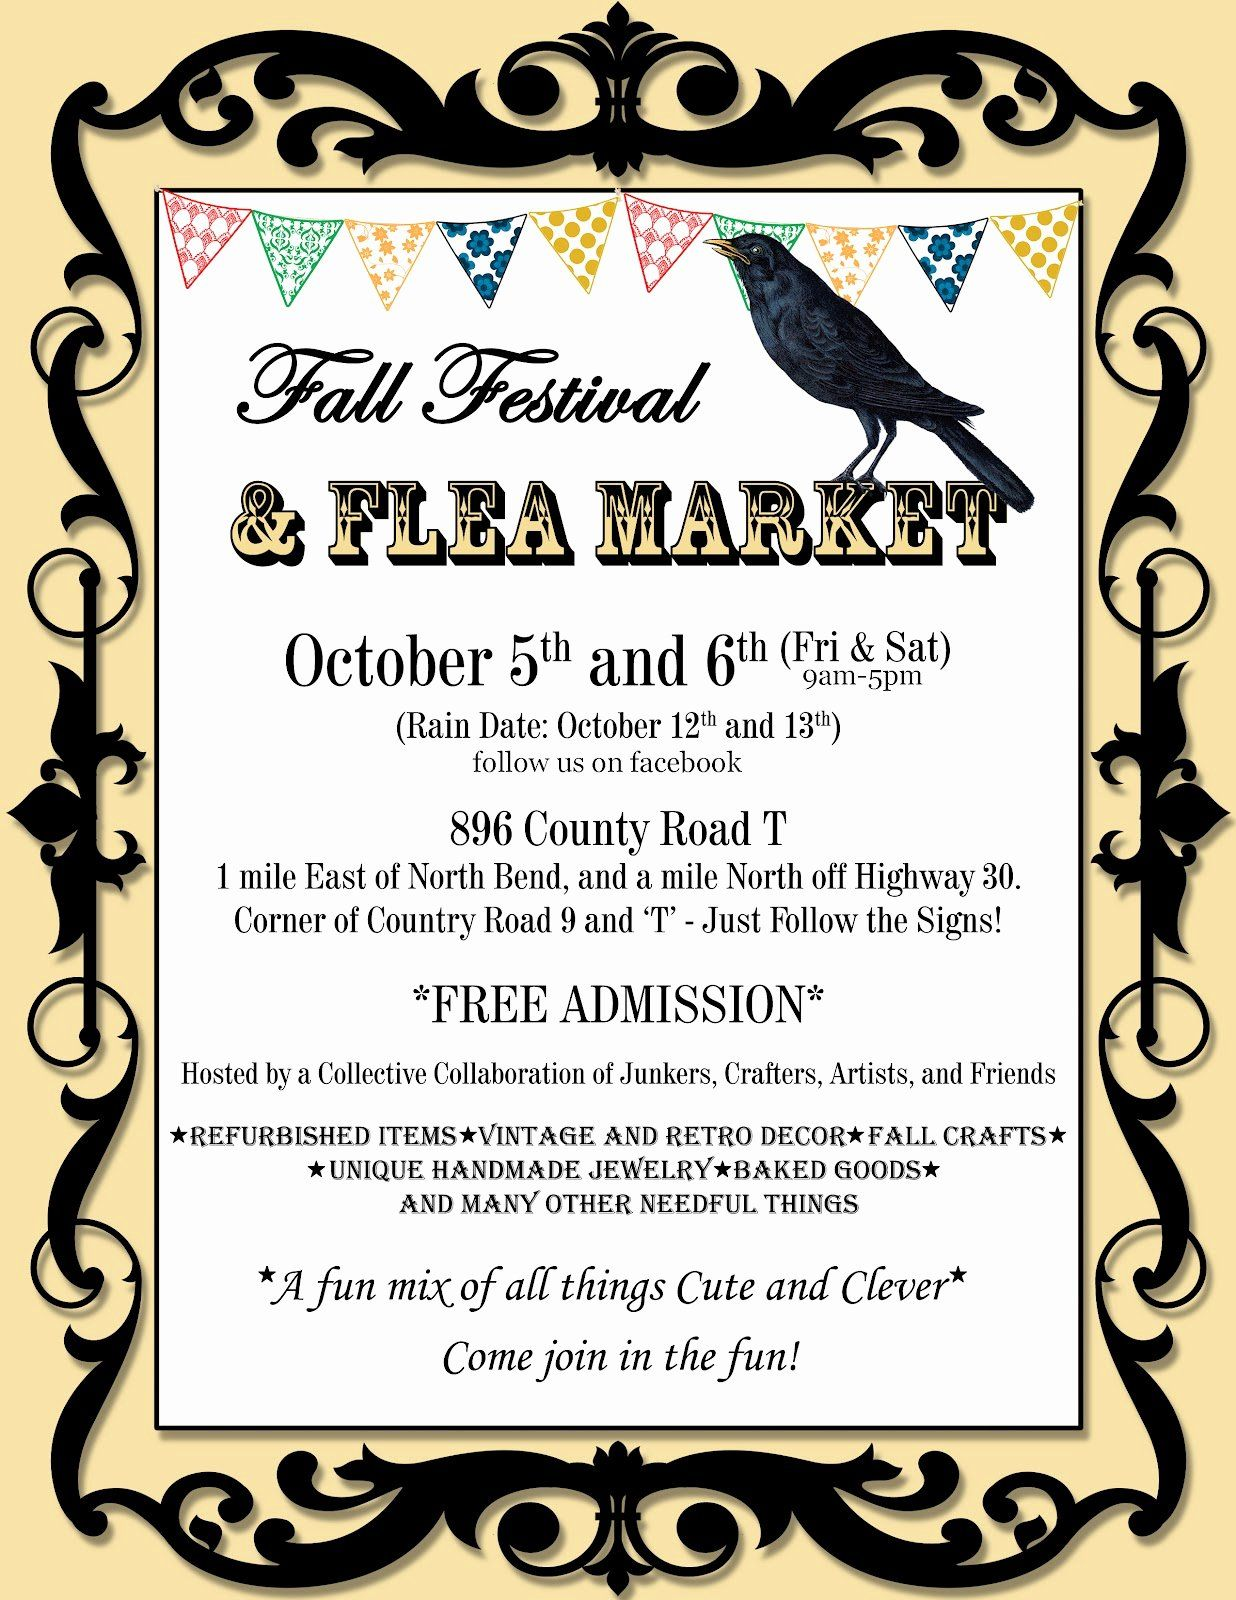 Flea Market Flyer Template Free New This Art That Makes Me Happy Halloween Crafts And Flyer Festival Flyer Halloween Crafts Flea market flyer template free